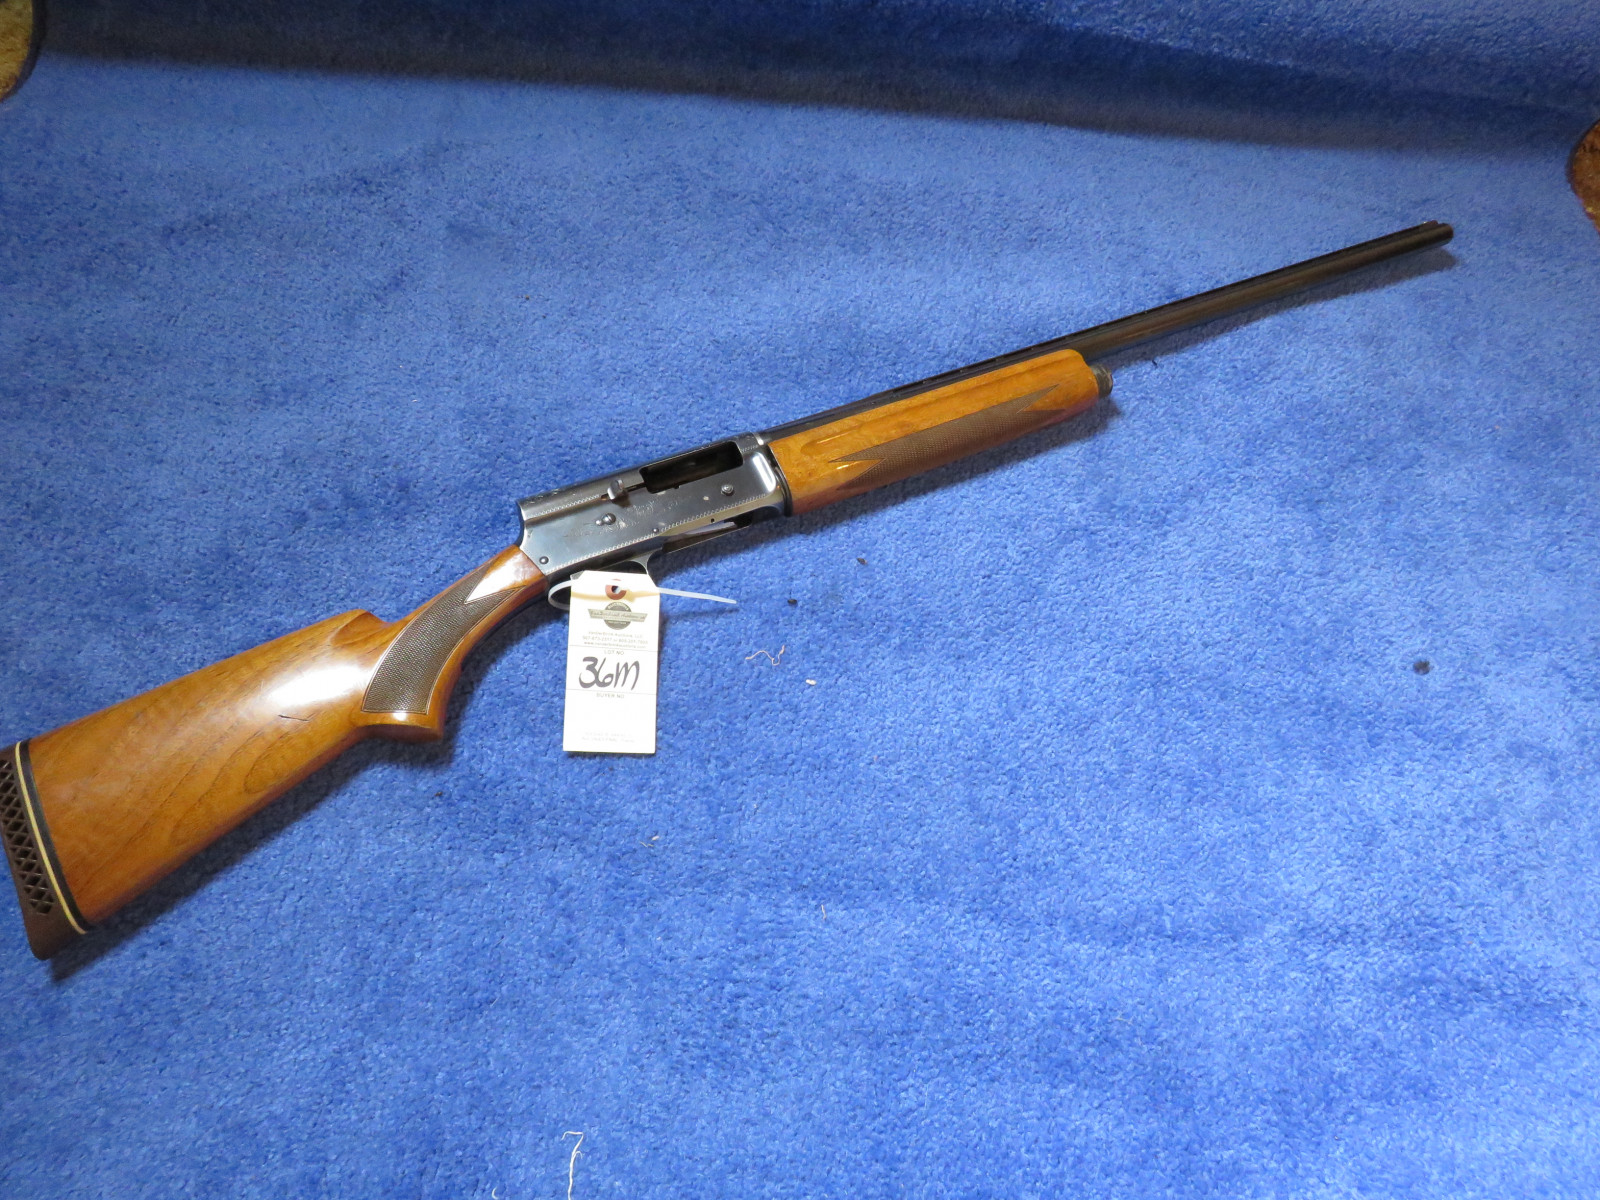 Browning Semi-automatic 12 Gauge Shotgun - Image 1